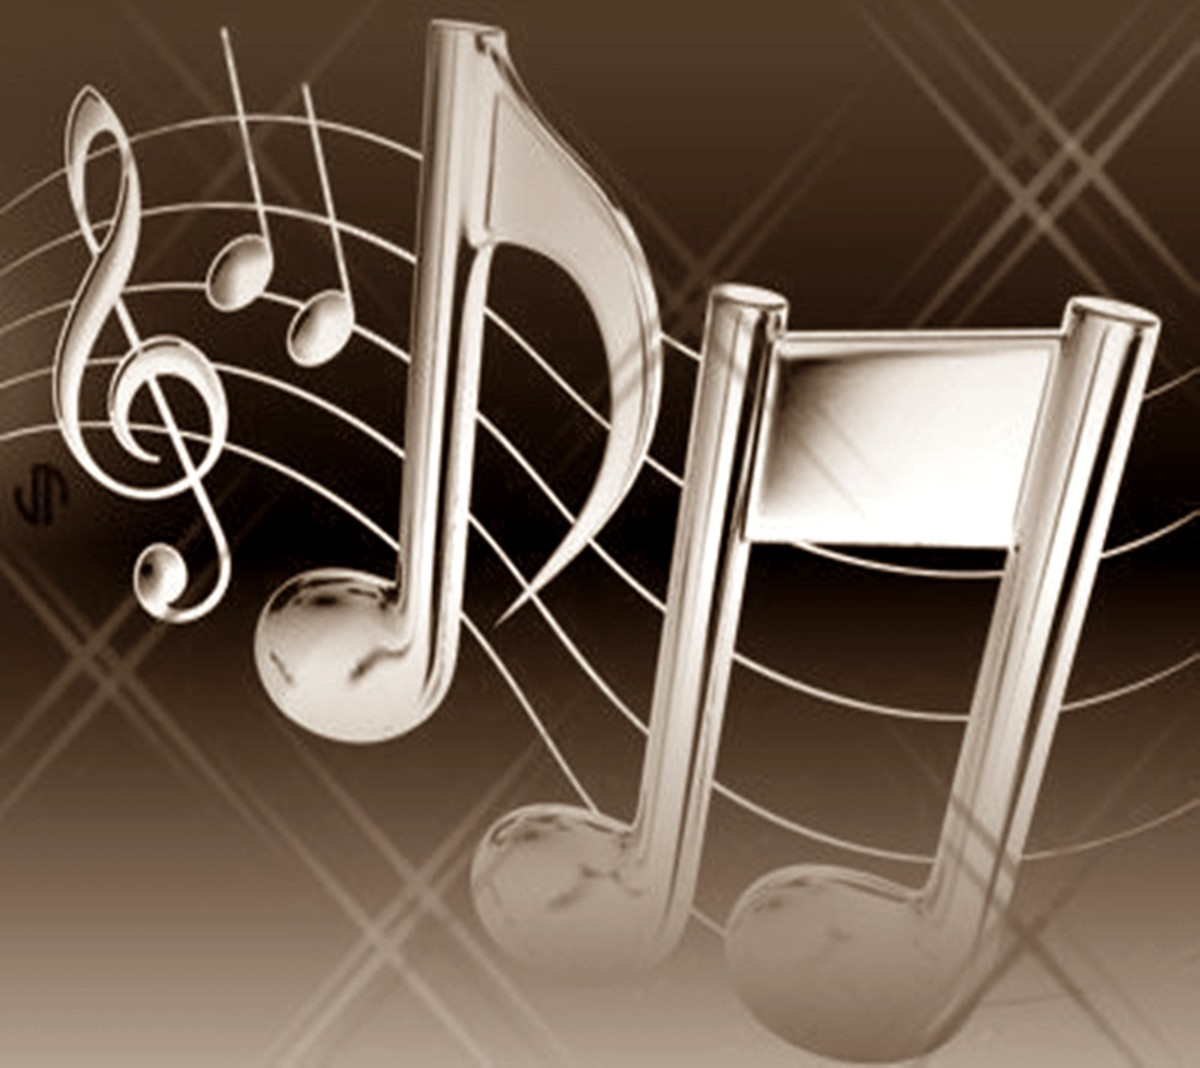 The Power of Music (a Poem)